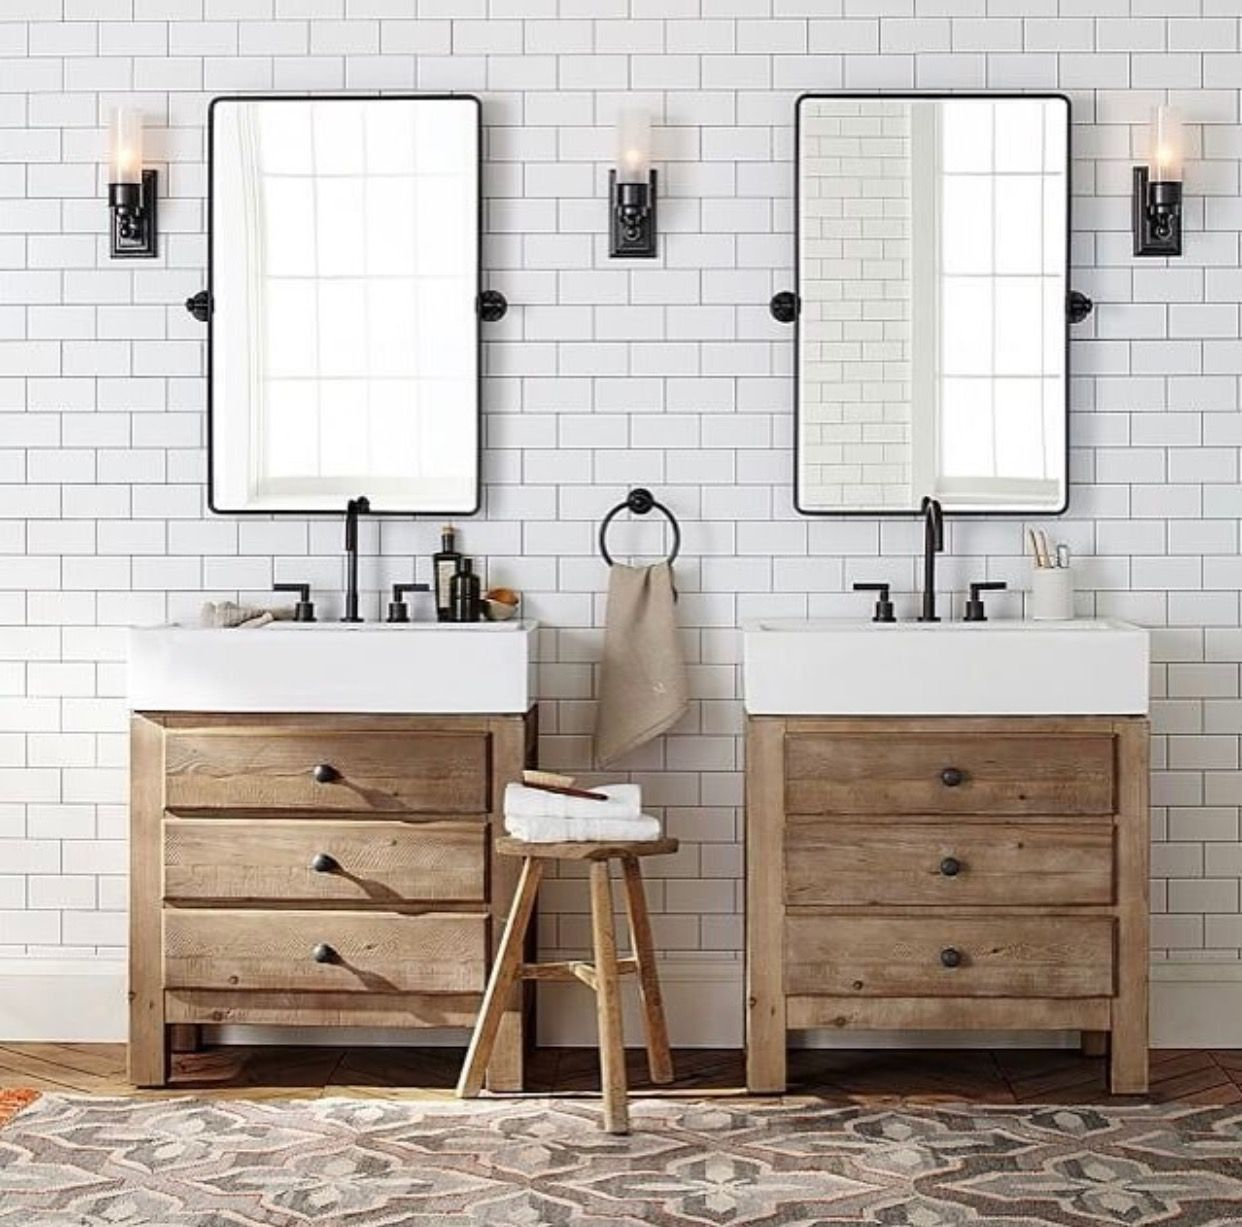 13 Dreamy Bathroom Lighting Ideas: Love The Mirrors, Sinks And Vanities, Lights